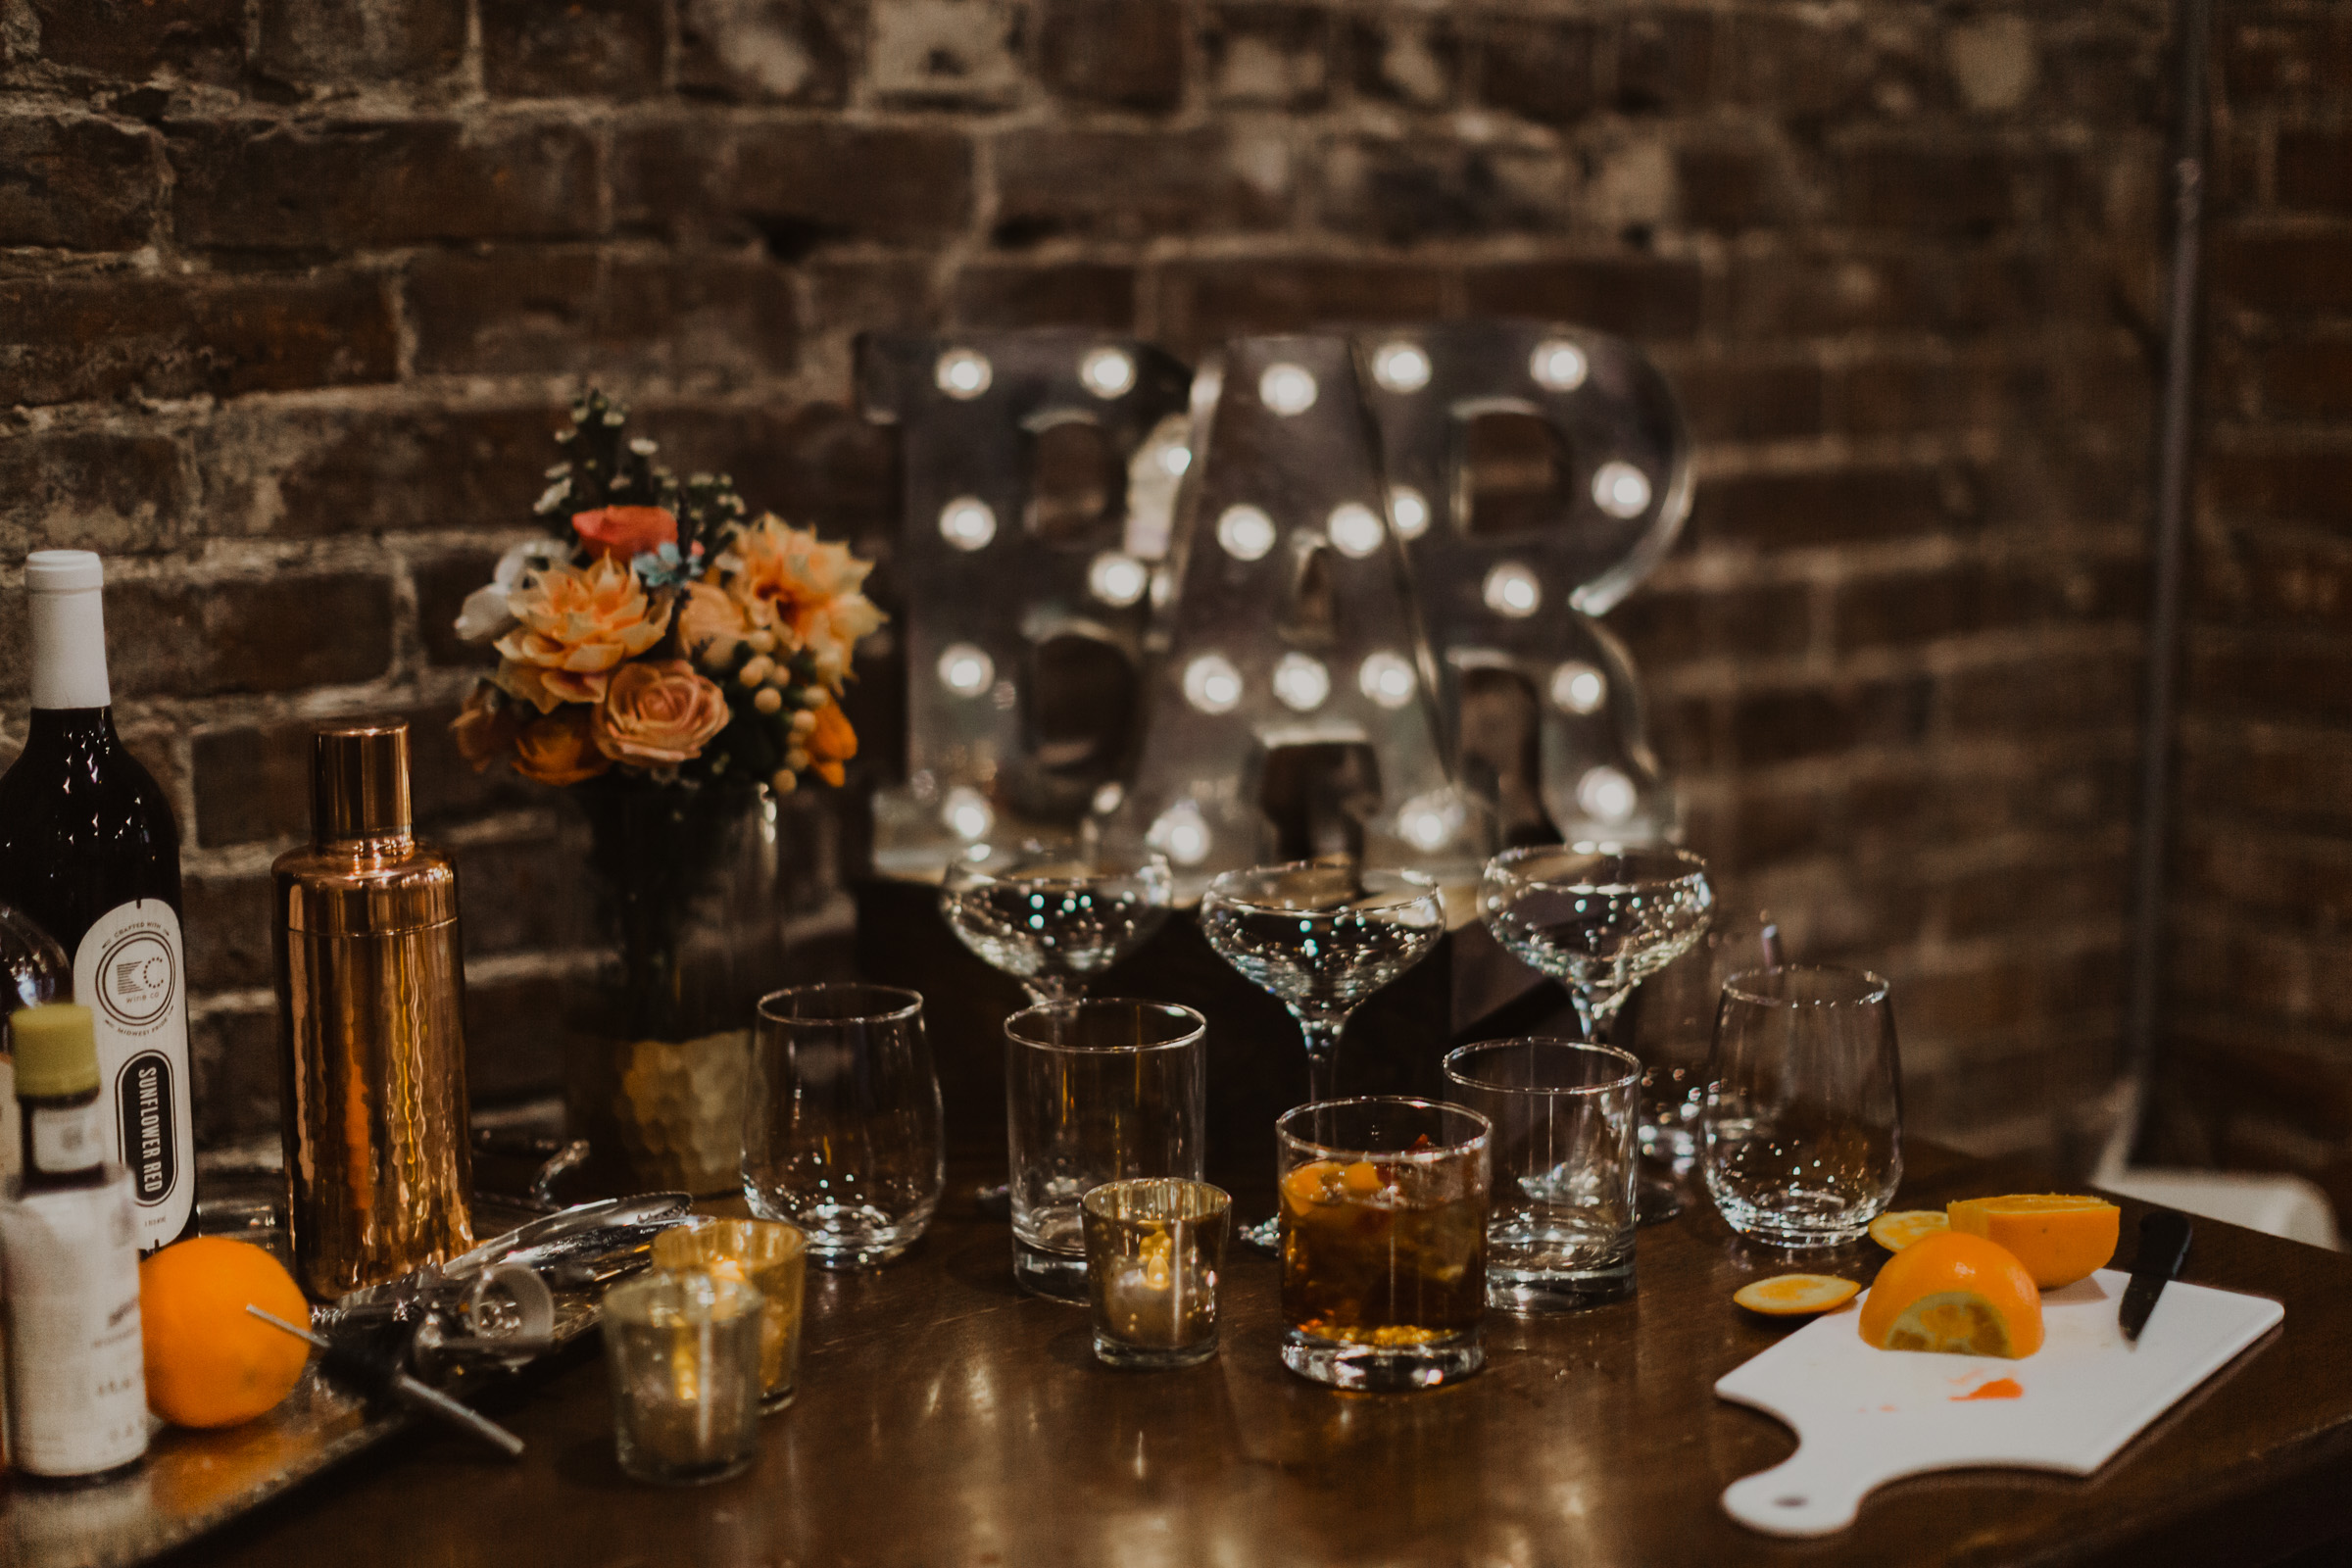 alyssa barletter photography styled shoot wedding inspiration kansas city west bottoms photographer motorcycle edgy intimate-9.jpg